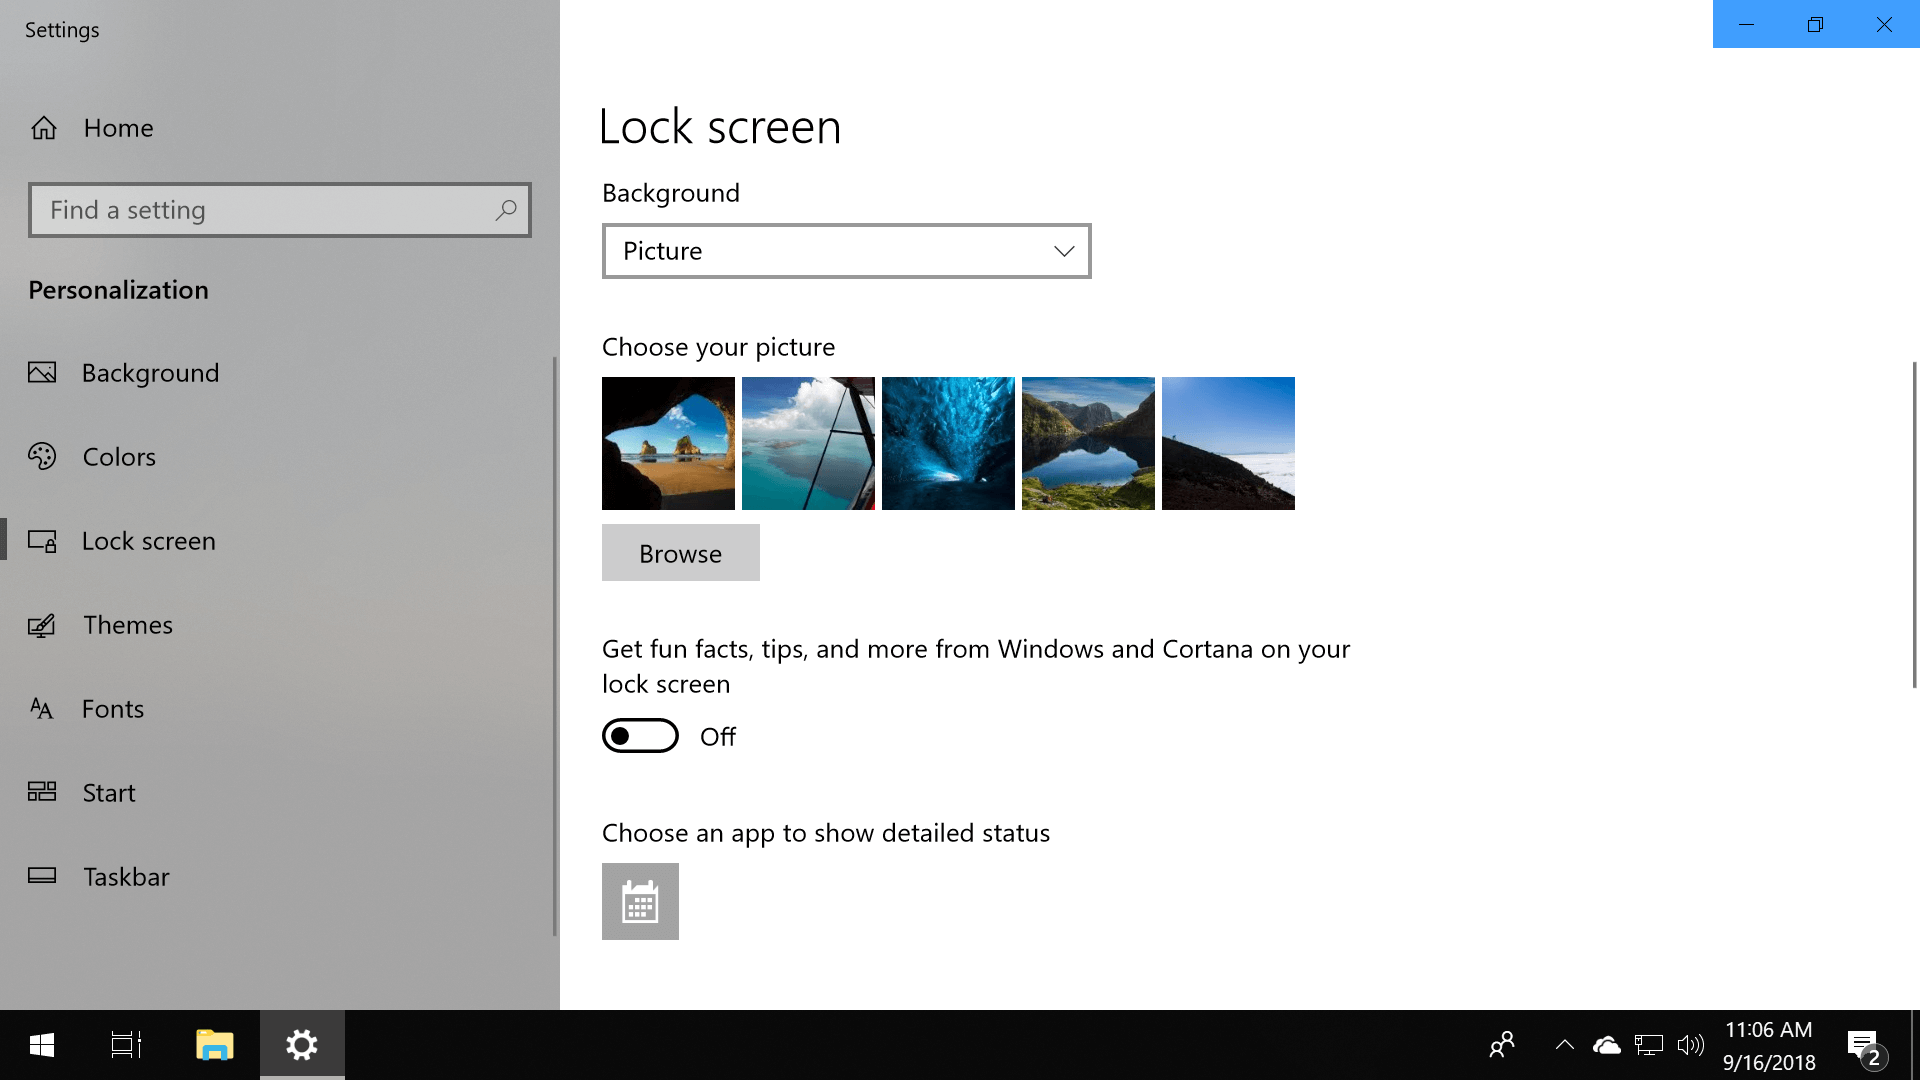 Add Windows 10 Lock Screen Pictures To Your Wallpaper